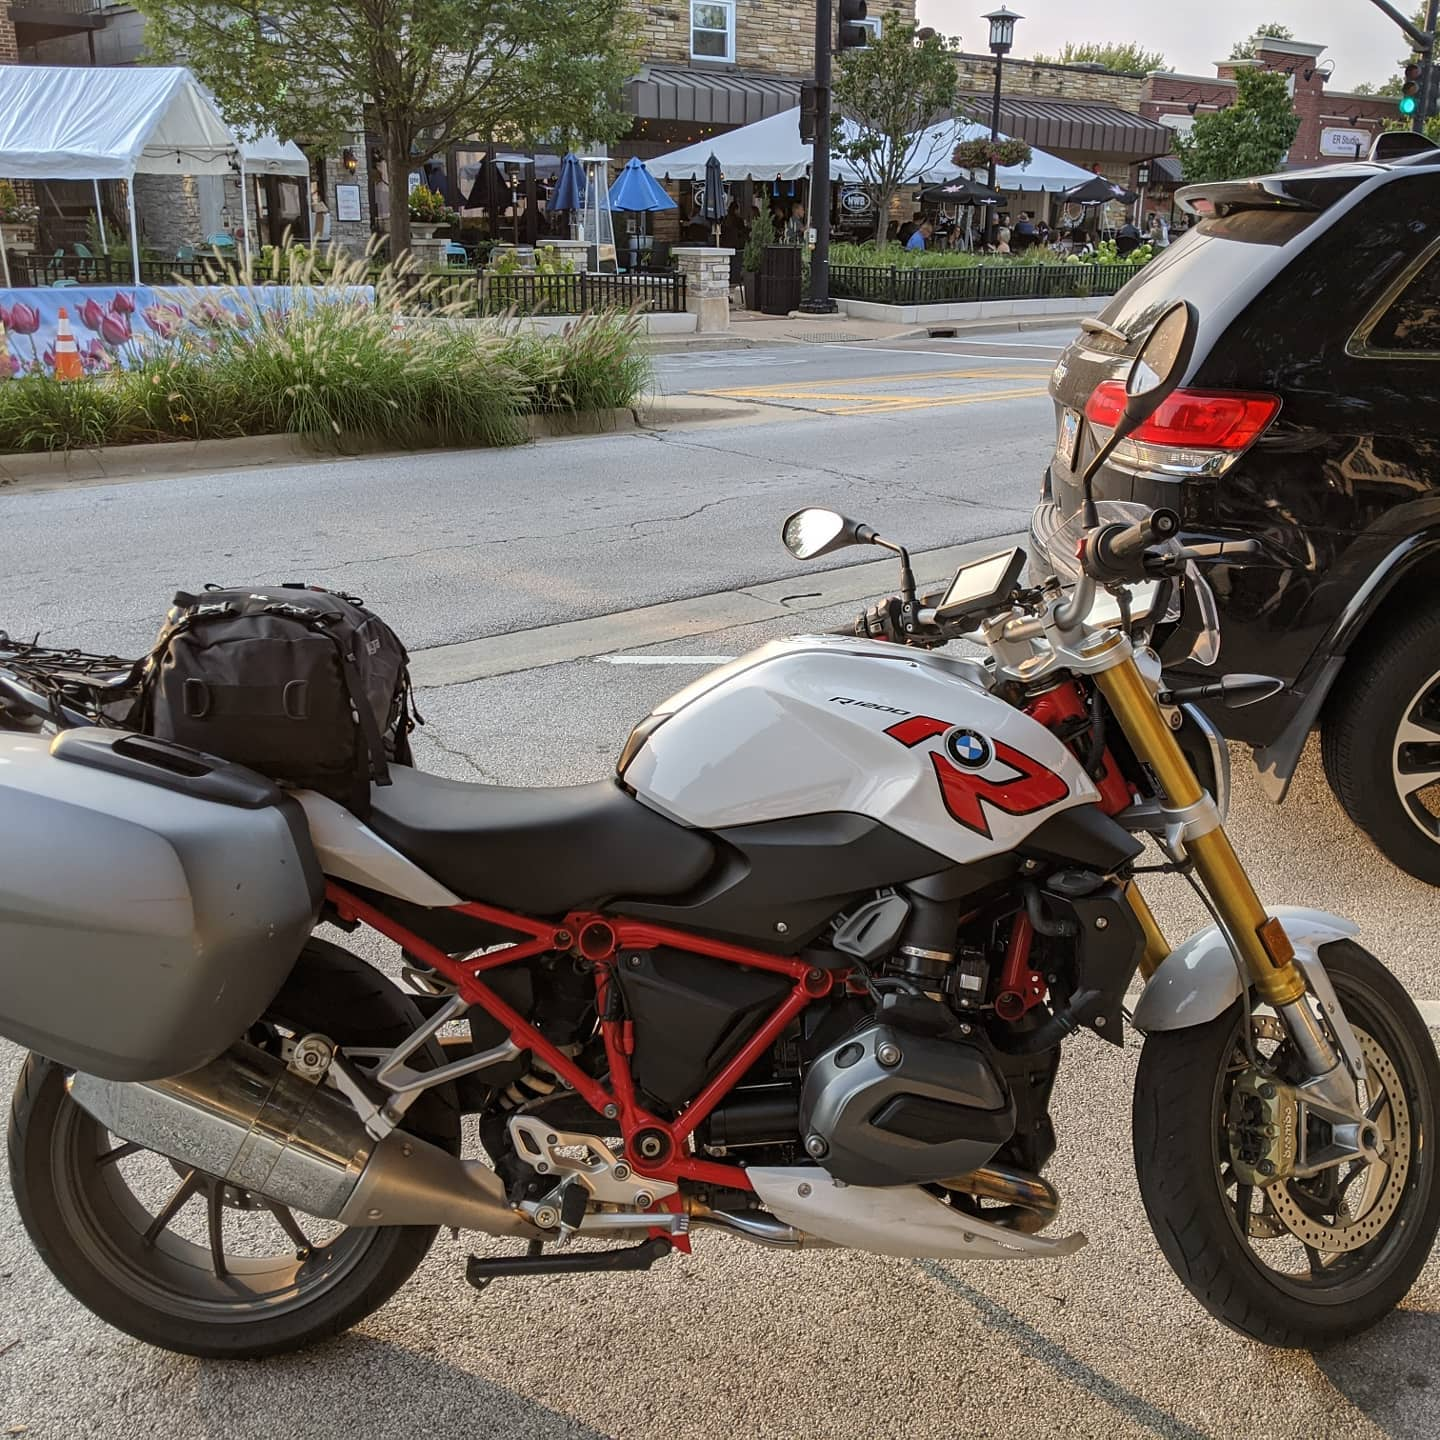 Time for dinner in Lisle, Illinois at NWB. Delicious and much needed after 300 miles or so. #motorrad #roadtrip #r1200r